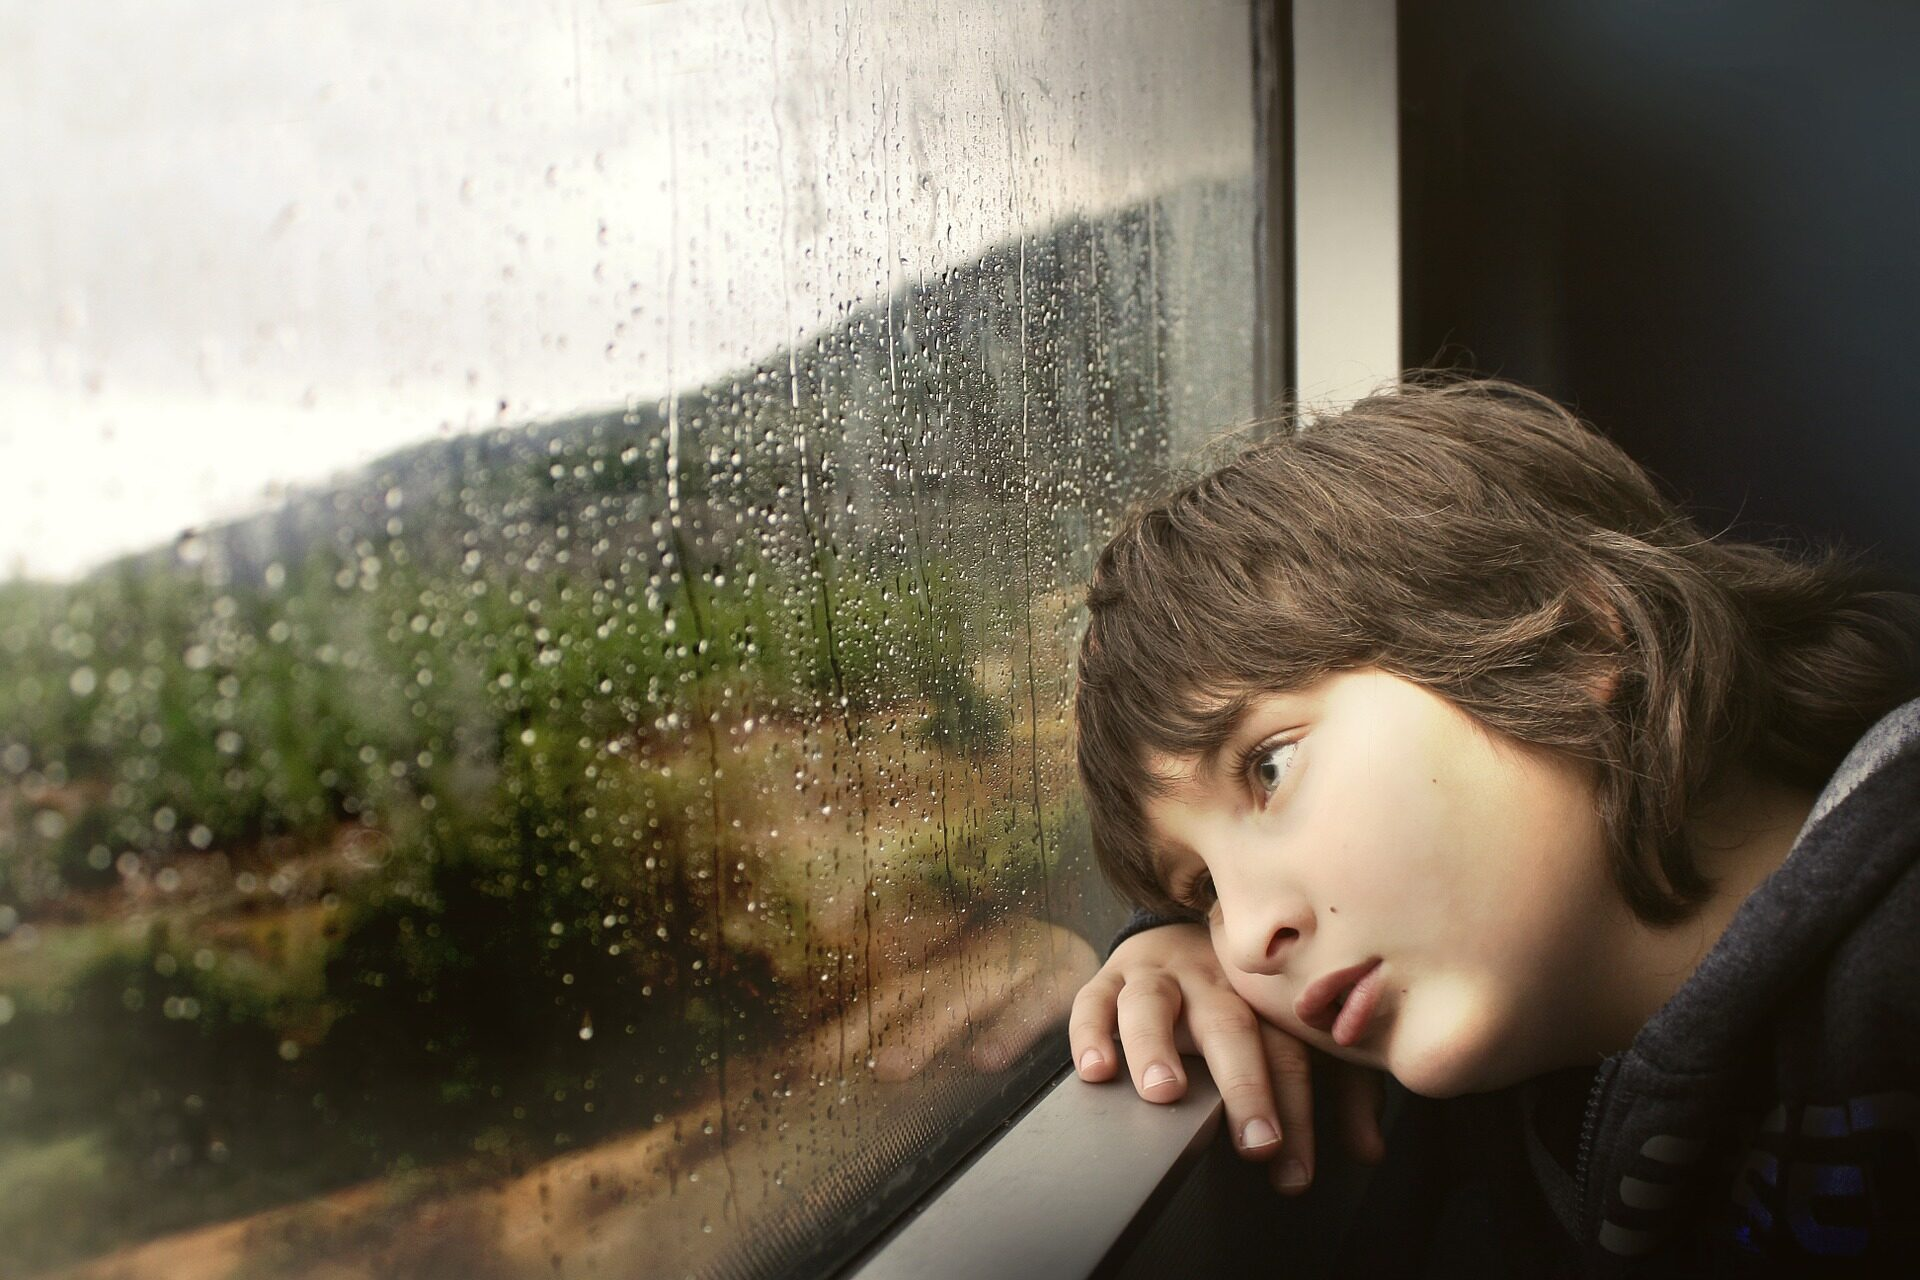 A young boy looks out a window. Image credit: Pixabay.com